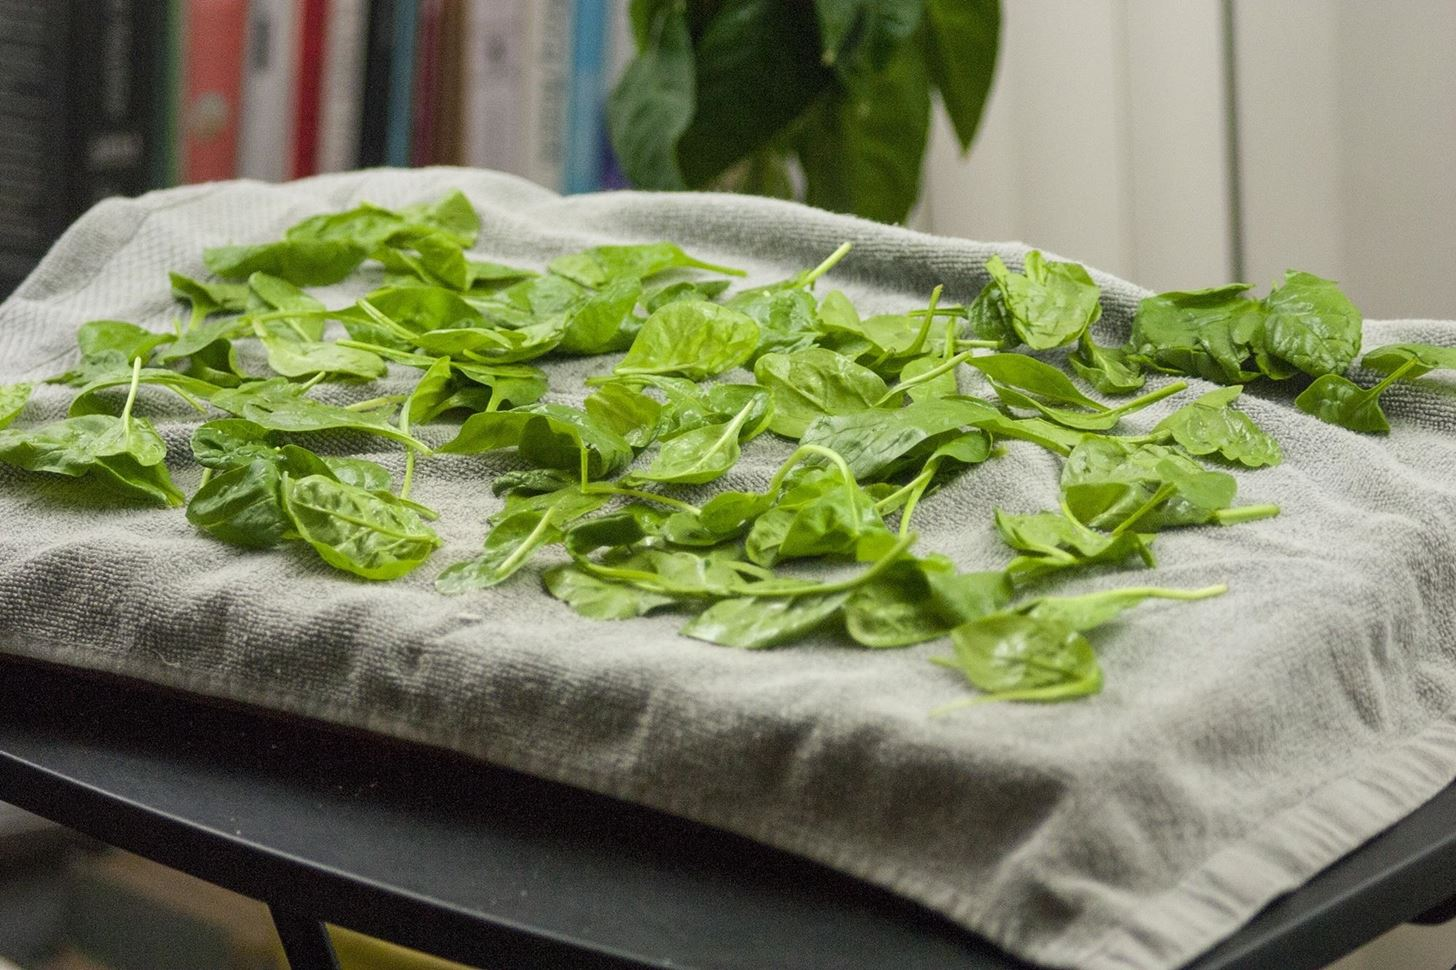 How to Dry Salad Greens Without Any Special Tools